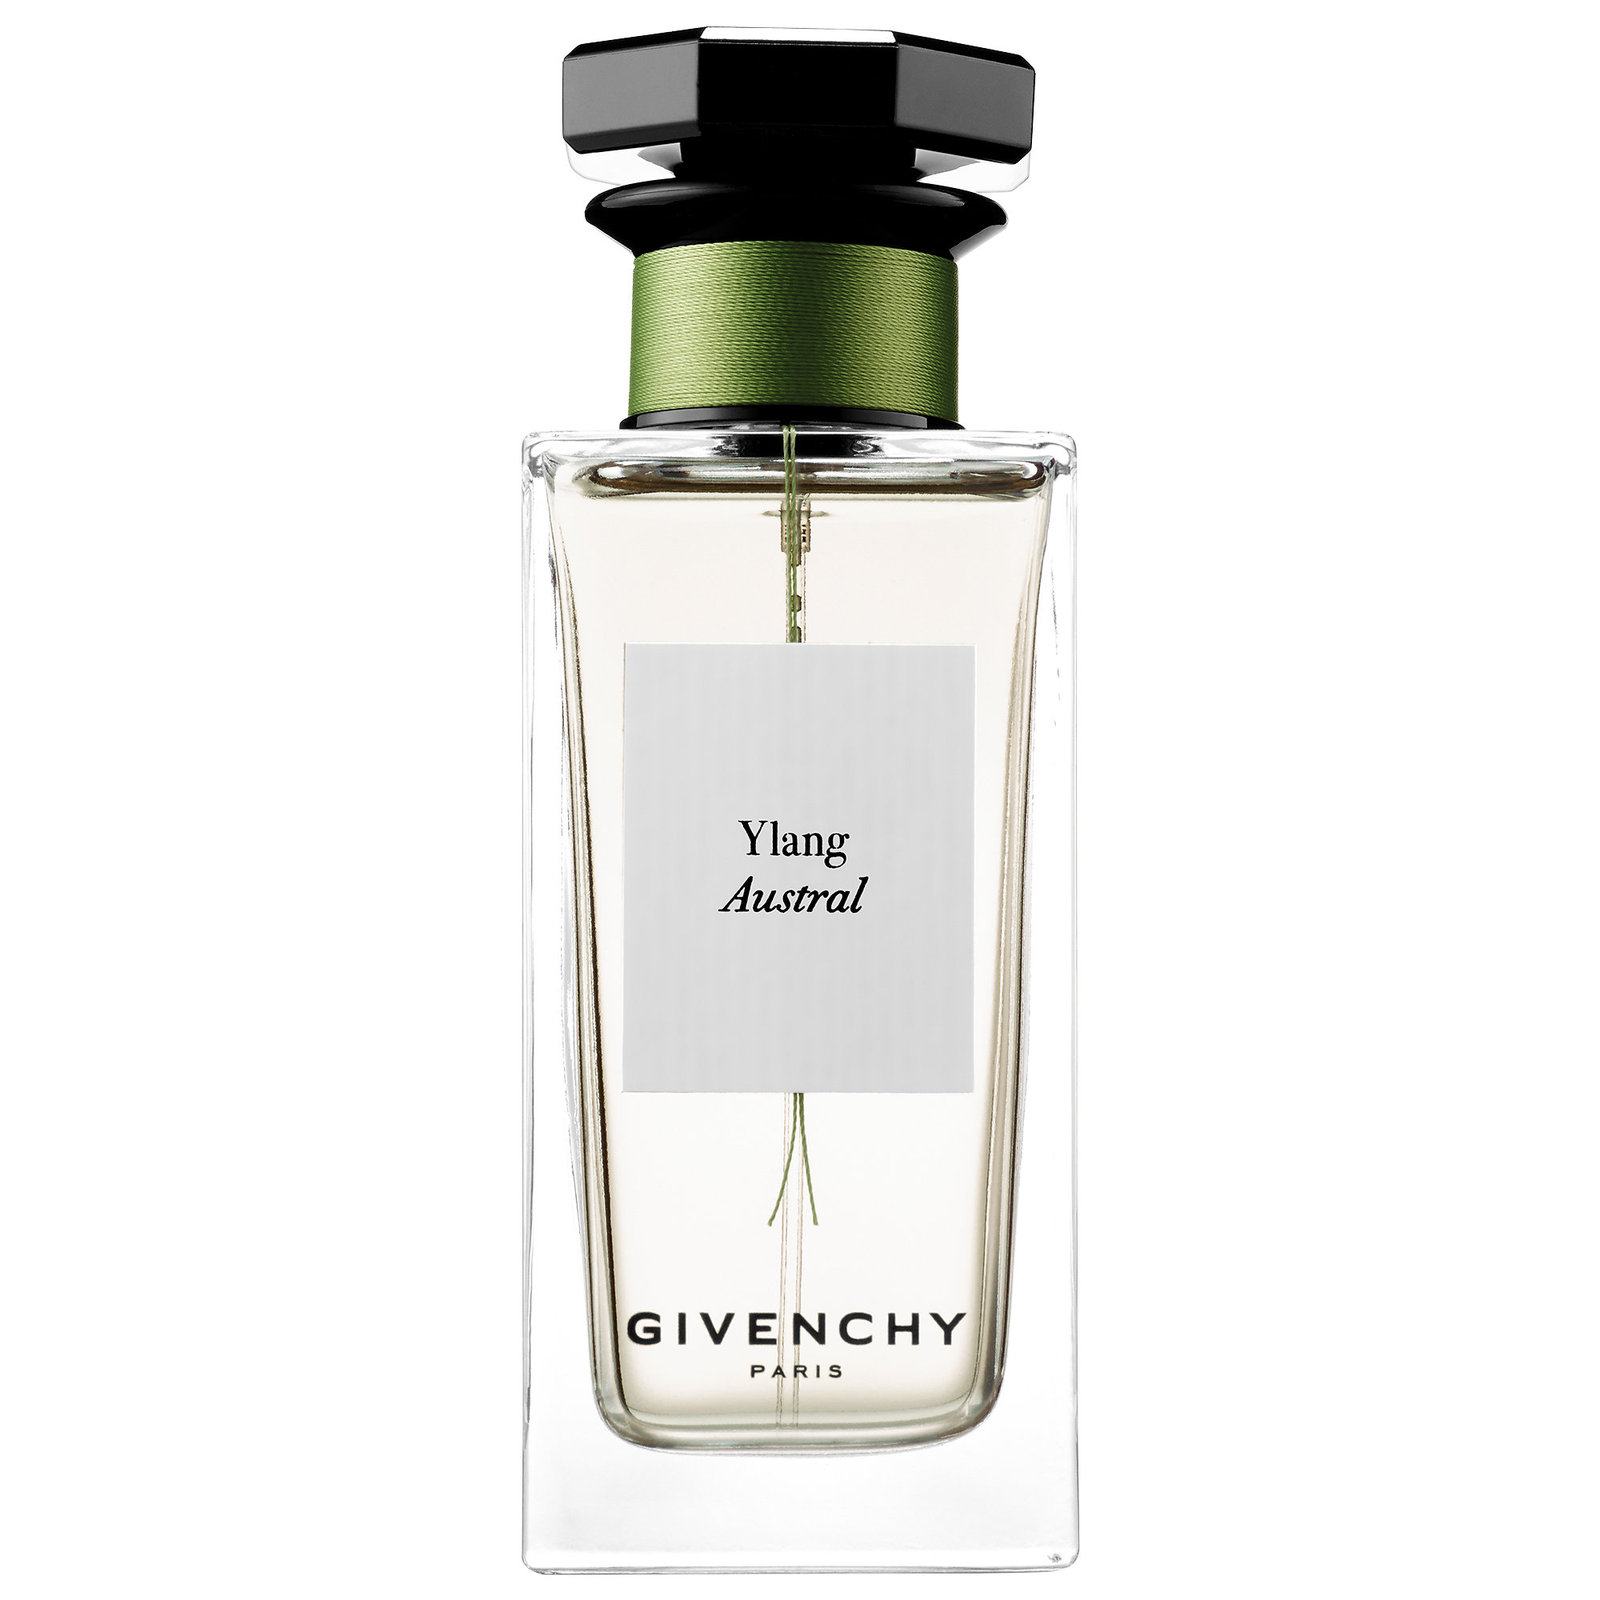 YLANG AUSTRAL by GIVENCHY 5ml Travel Spray Perfume MANDARIN LEAF SANDLEWOOD